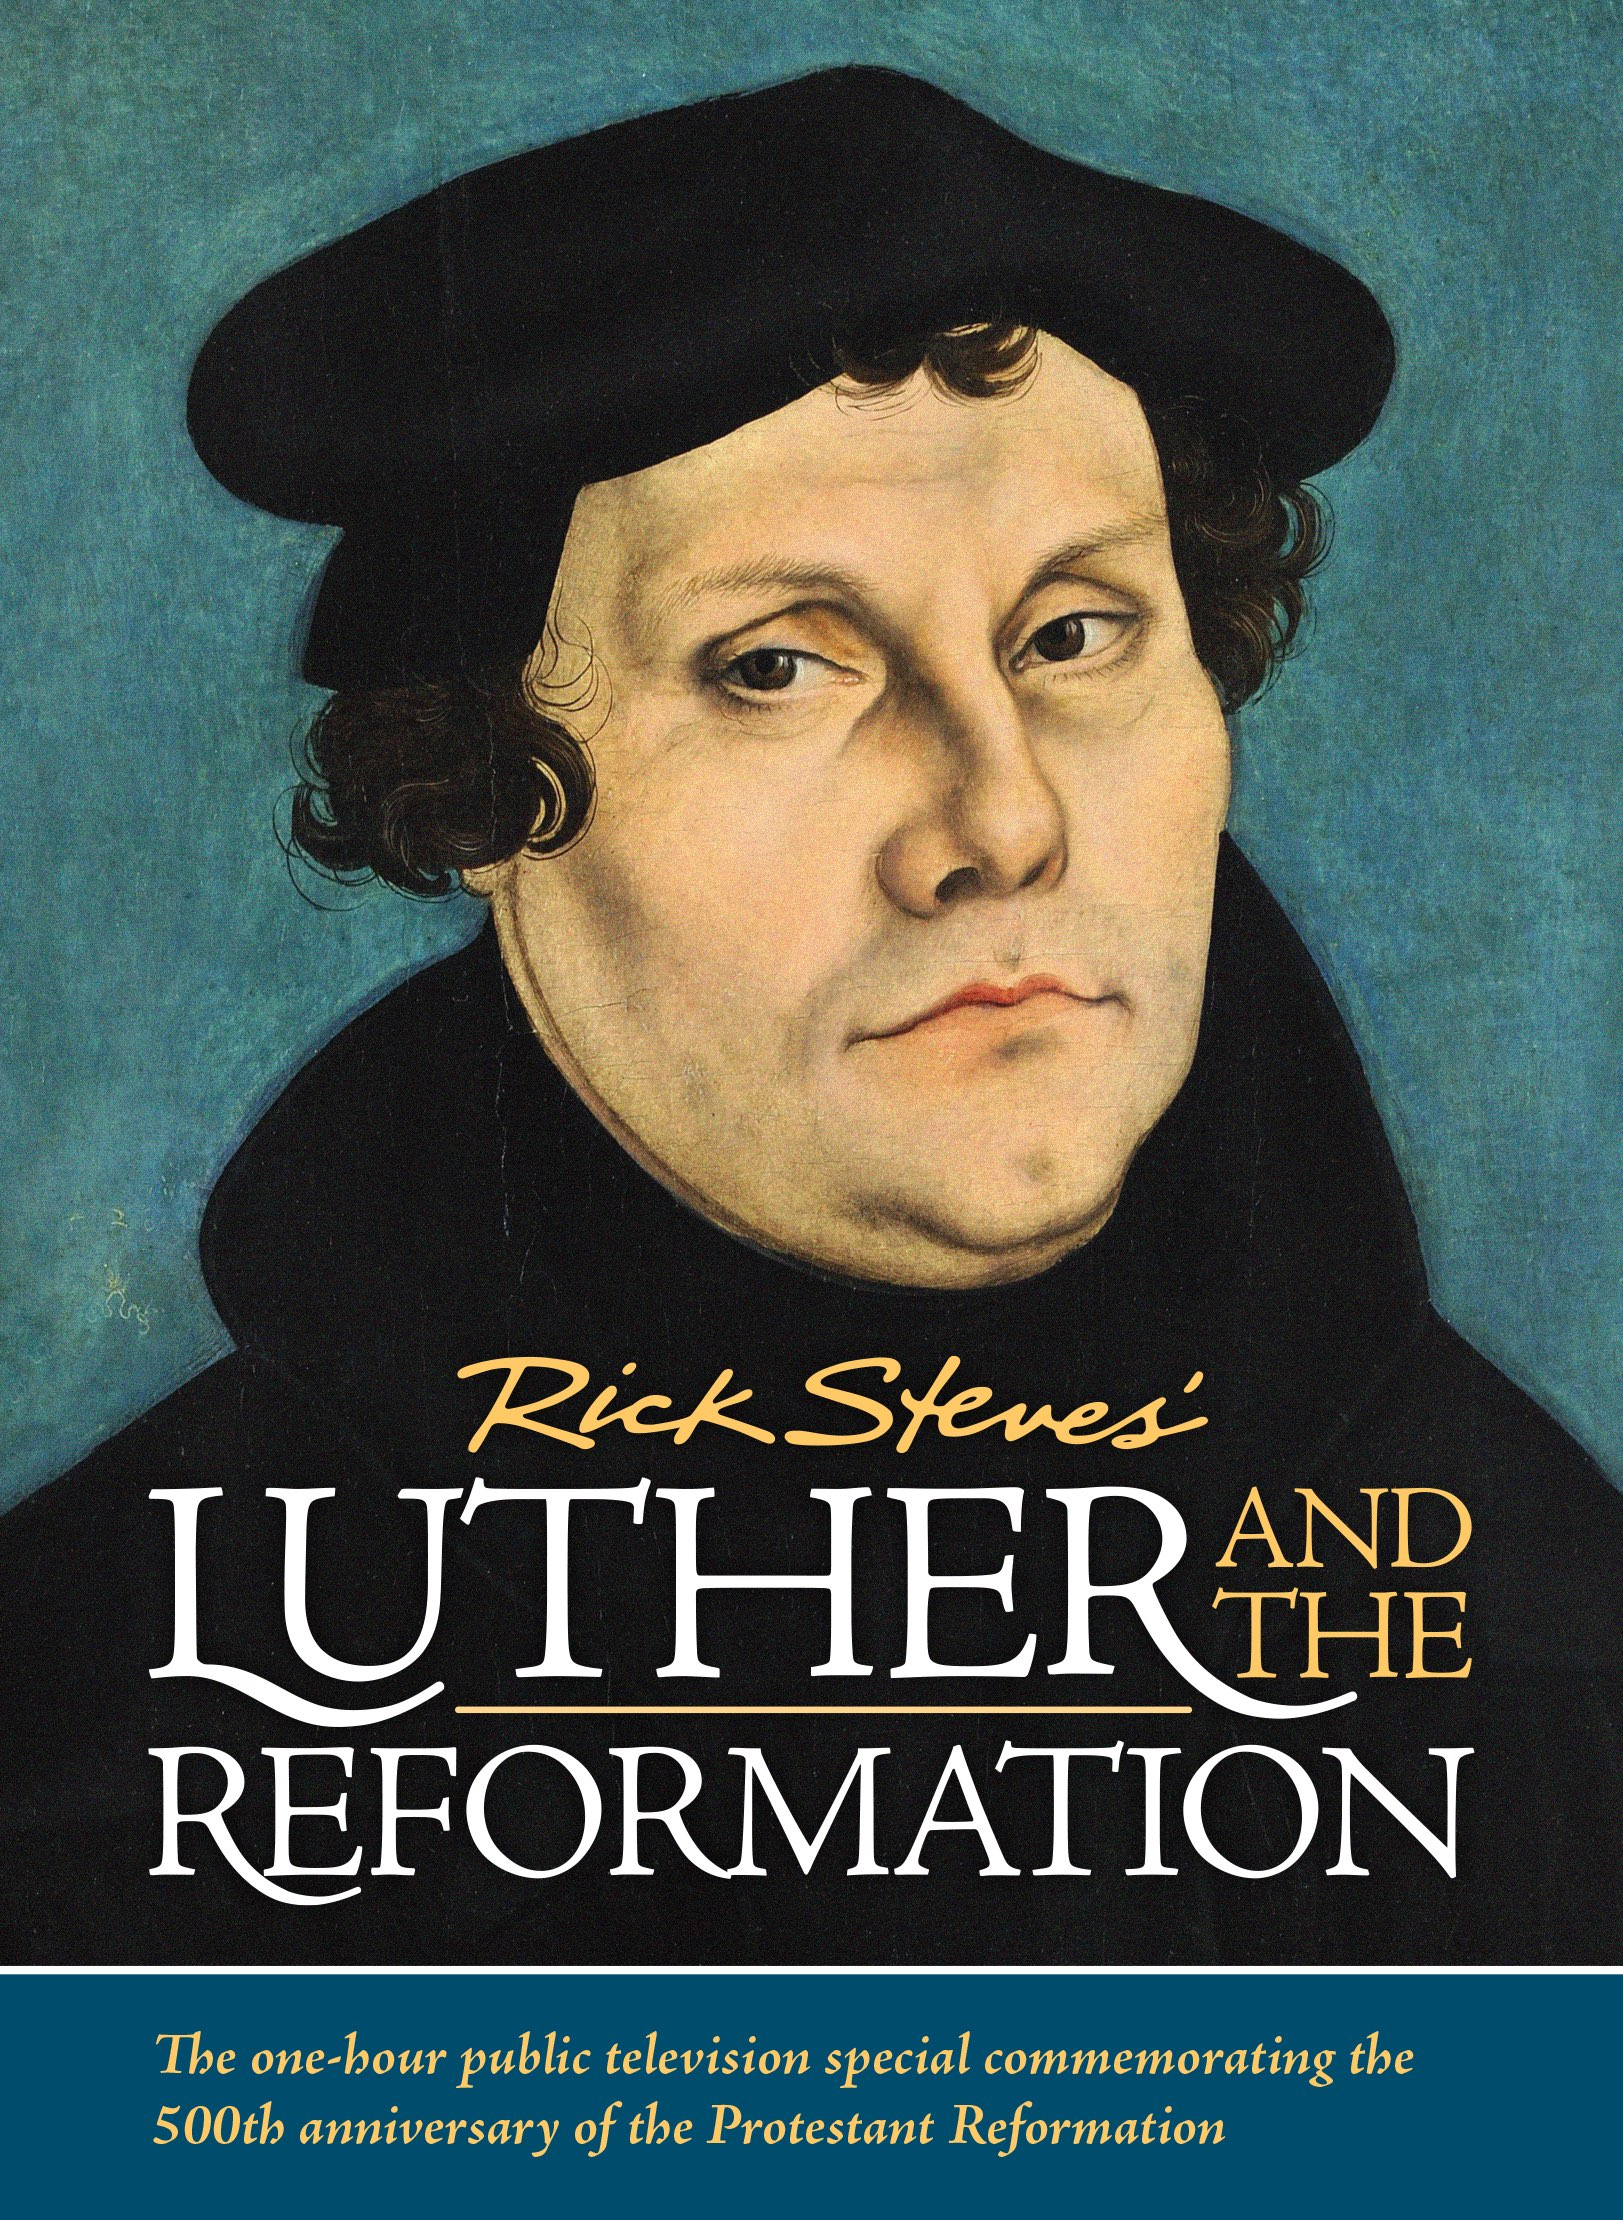 a biography of the reformer martin luther Editor's note: scholars disagree about some details of martin luther's biography in this book for children, we have chosen to tell the popular version of luther's life story, while also drawing on the expertise of historians.